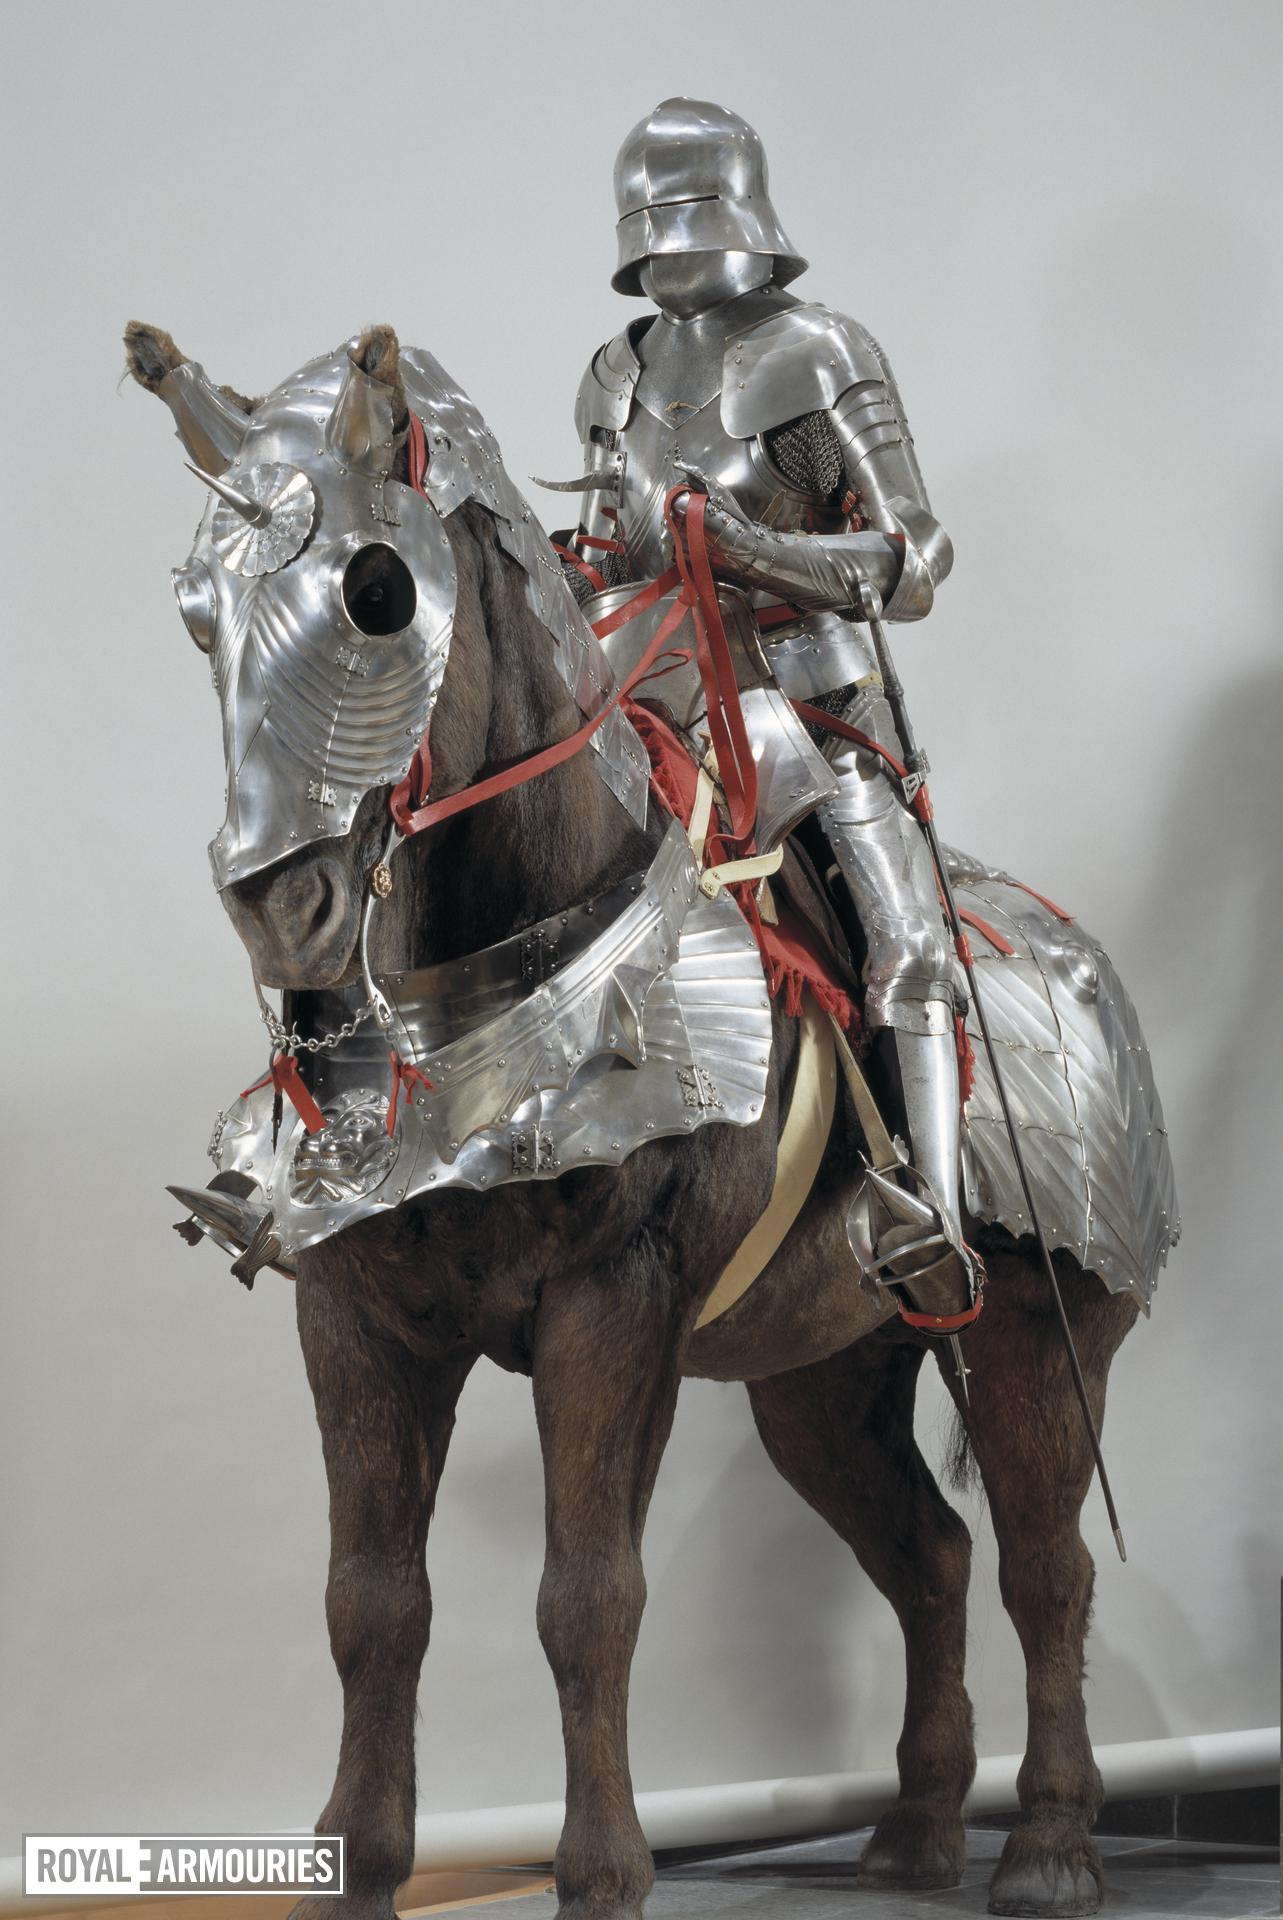 Gothic armour - Gothic armour Composite armour, made up of sallet (IV.15), bevor (III.1300, to be checked), breastplate (III.69), backplate (III.70), and other pieces.